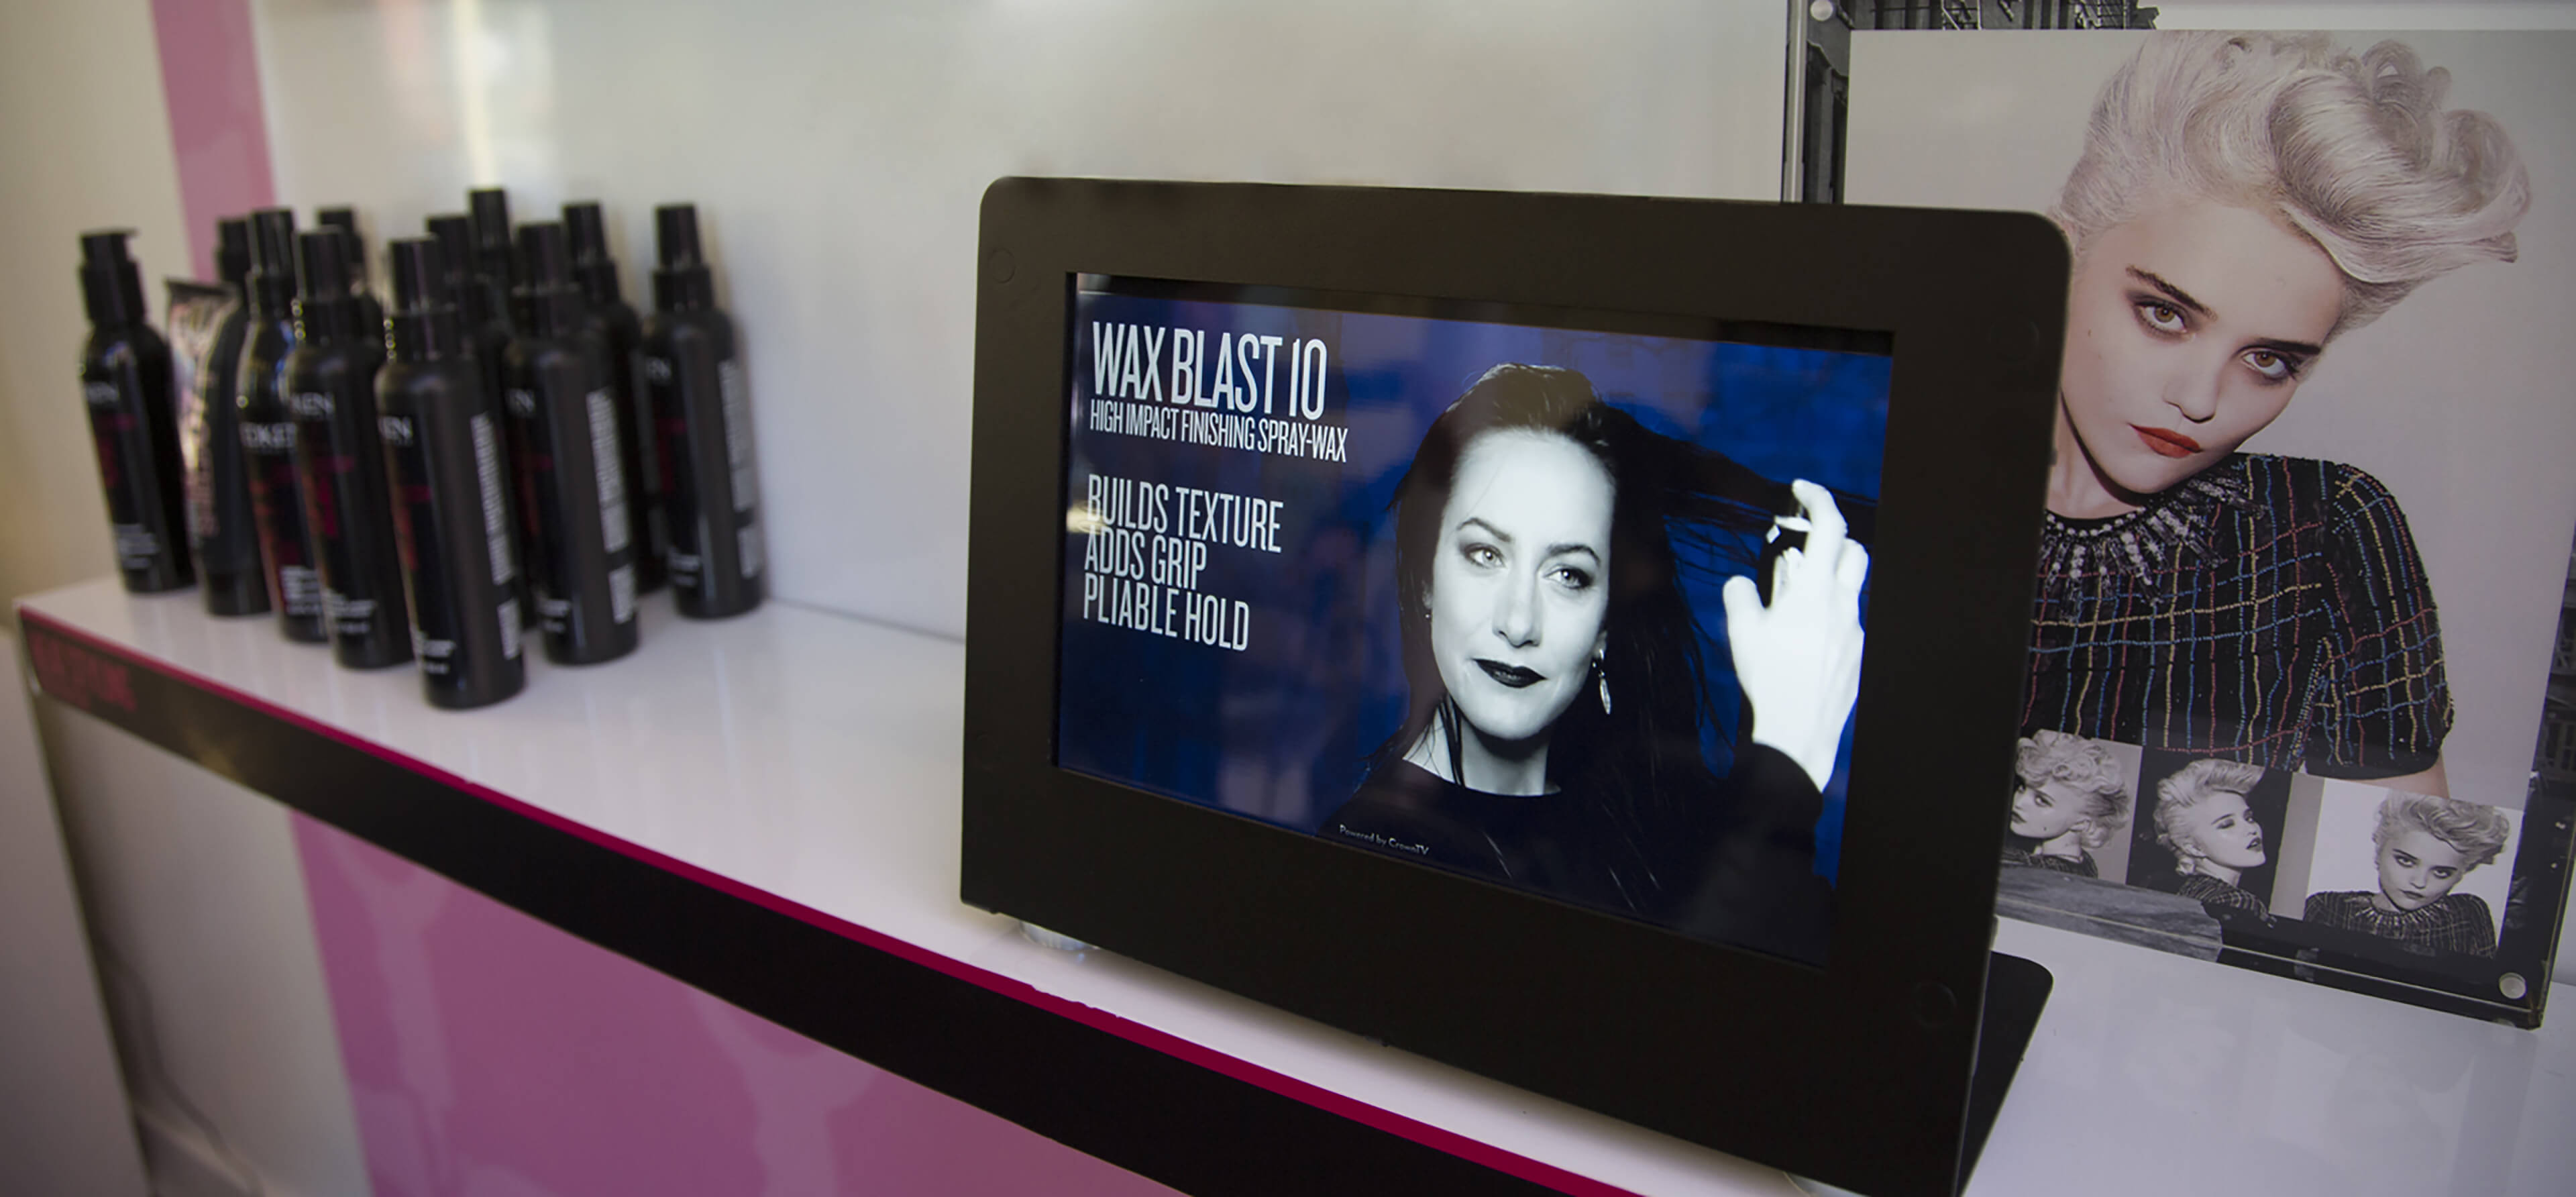 http://digital%20signage%20tablet,%20salon%20digital%20signage